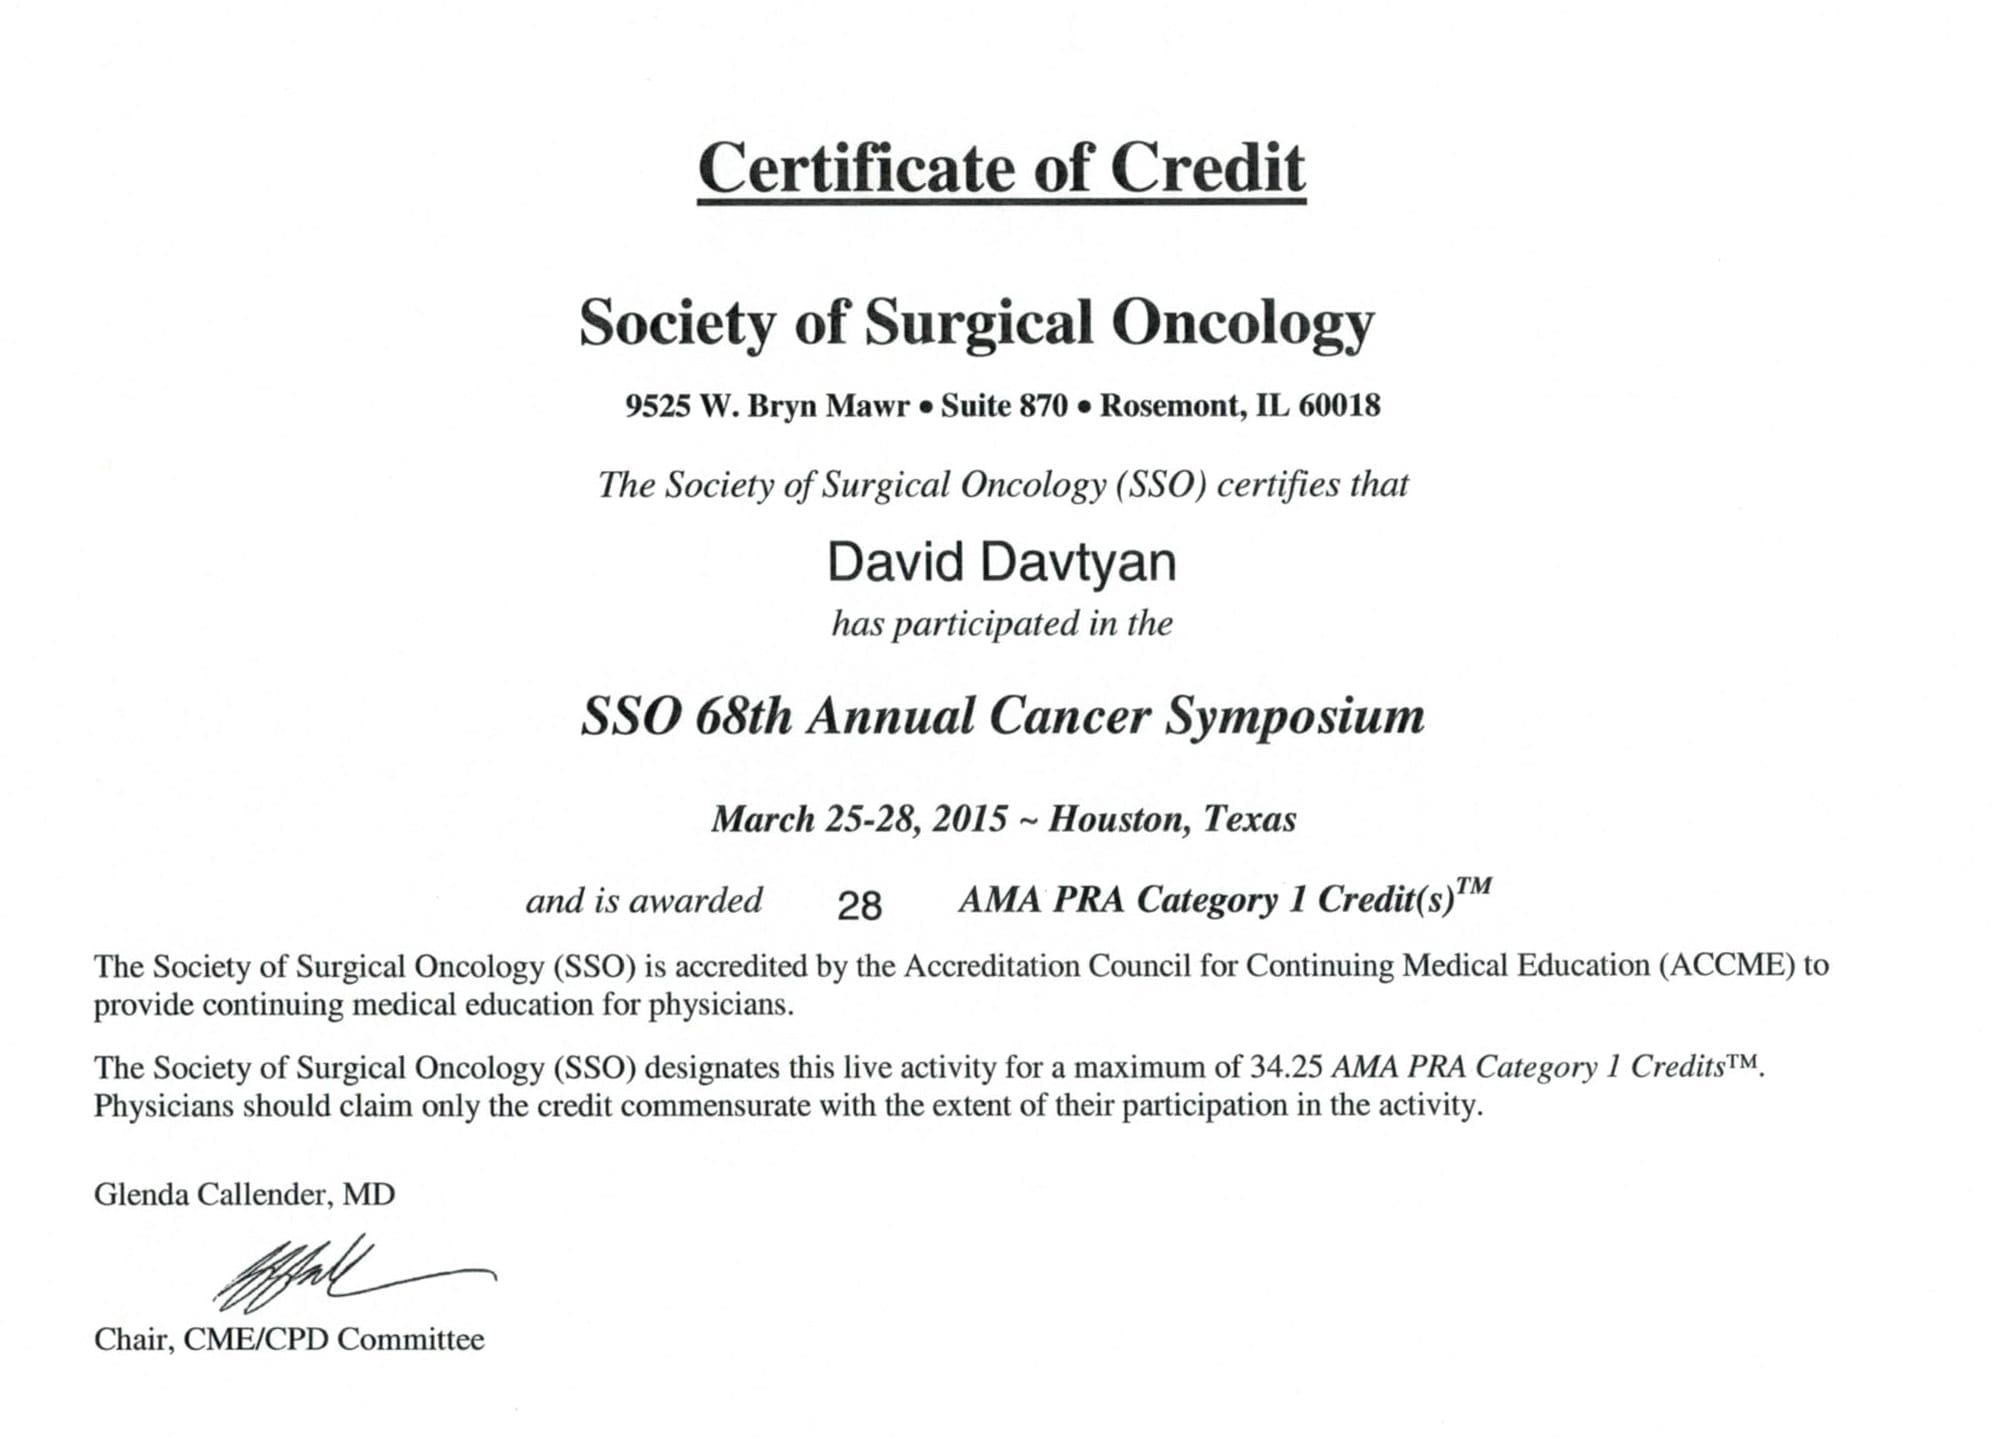 Dr. David Davtyan's 2015 Certification Society of Surgical Oncology For Participating In The SSO 68th Cancer Symposium